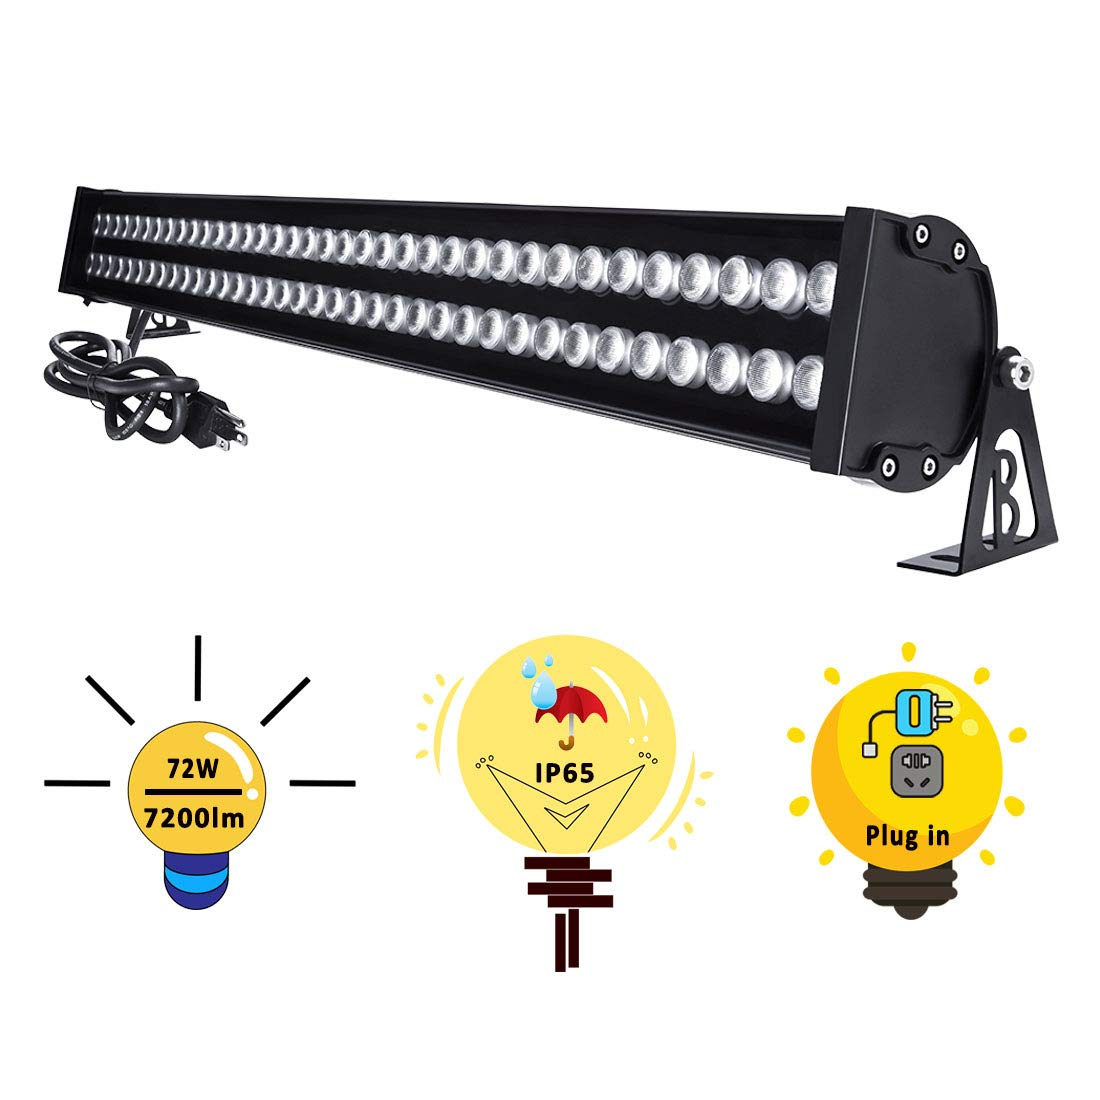 YRXC 72W LED Wall Washer Lights 3.2ft/40'' 120V IP65 Waterproof Linear LED Light Bar Warm White 3000K Walls Trees Billboards Building Decorations Outdoor/Indoor LED Lamp With Plug In